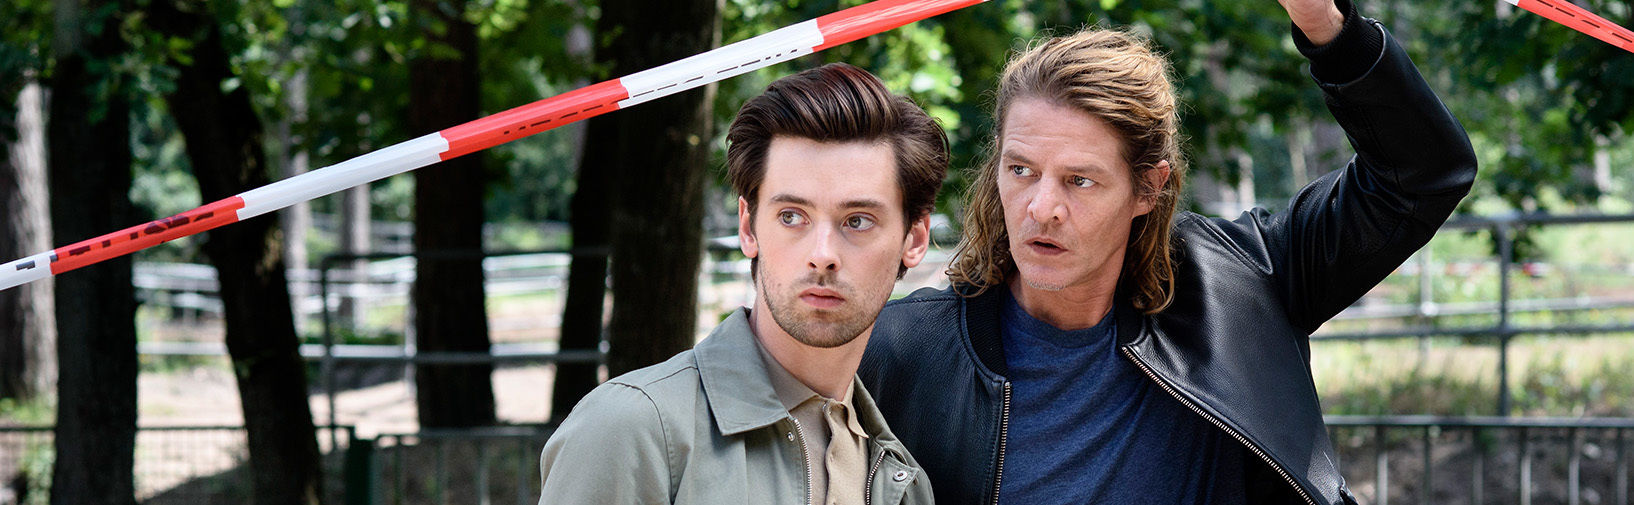 Tygo Gernandt and Willem Voogd from starring duo in new RTL-serie 'Odds' hero image